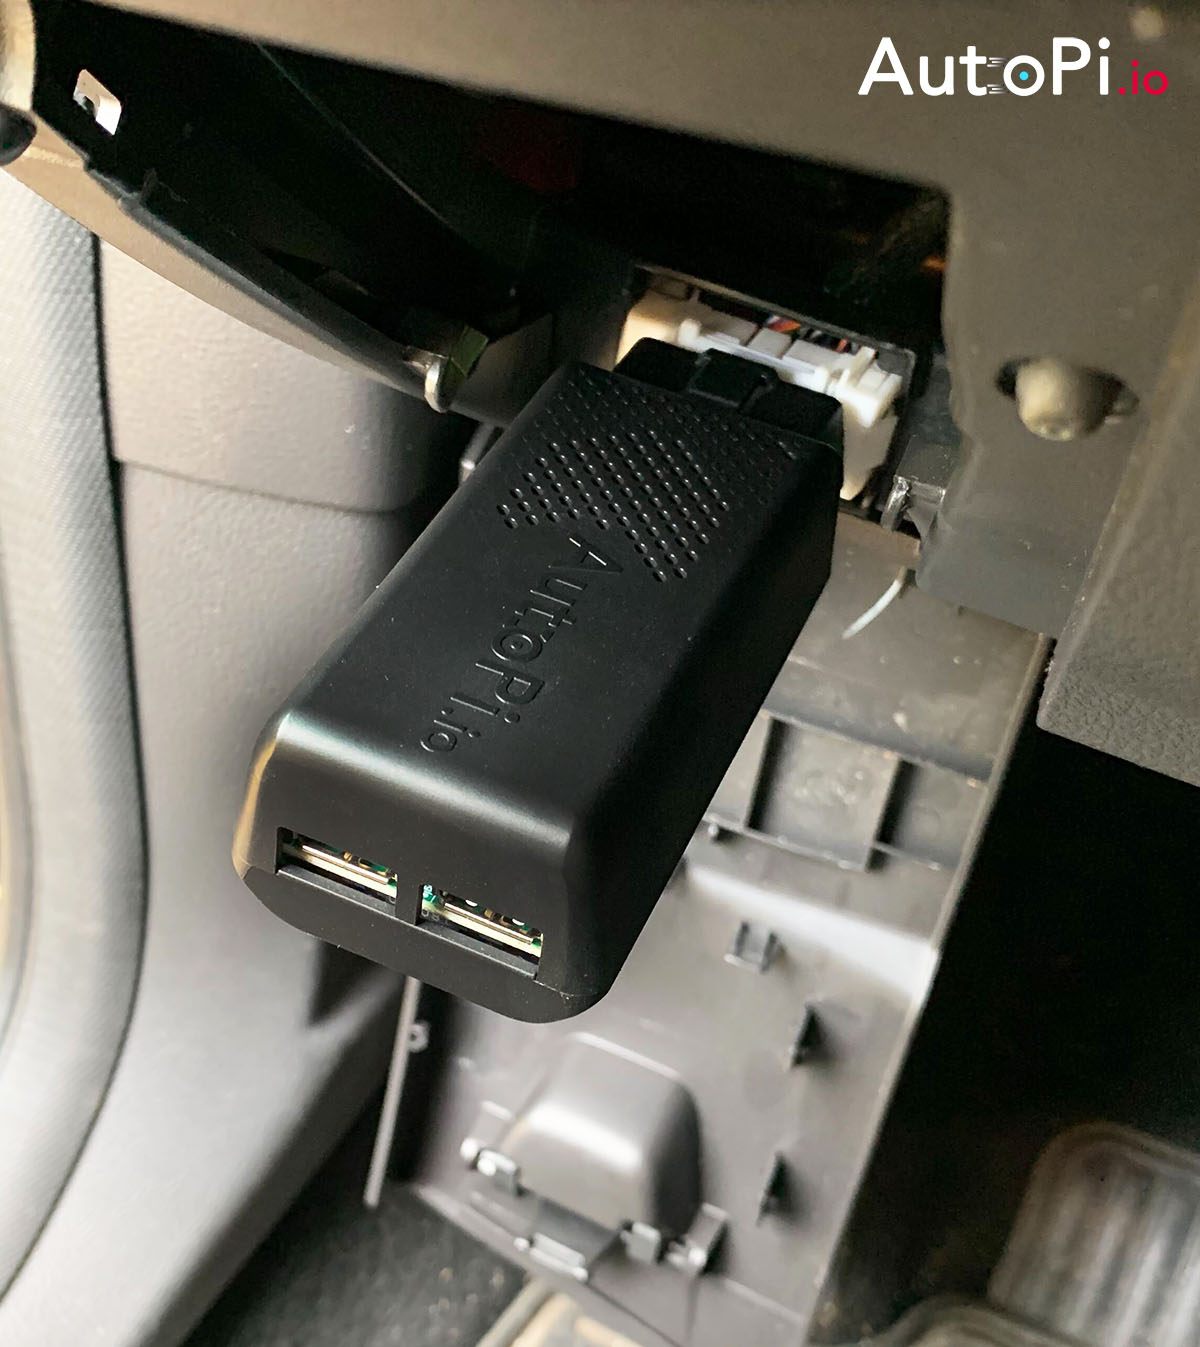 A detailed shot of AutoPi telematics unit generation 2 plugged into obd 2 port